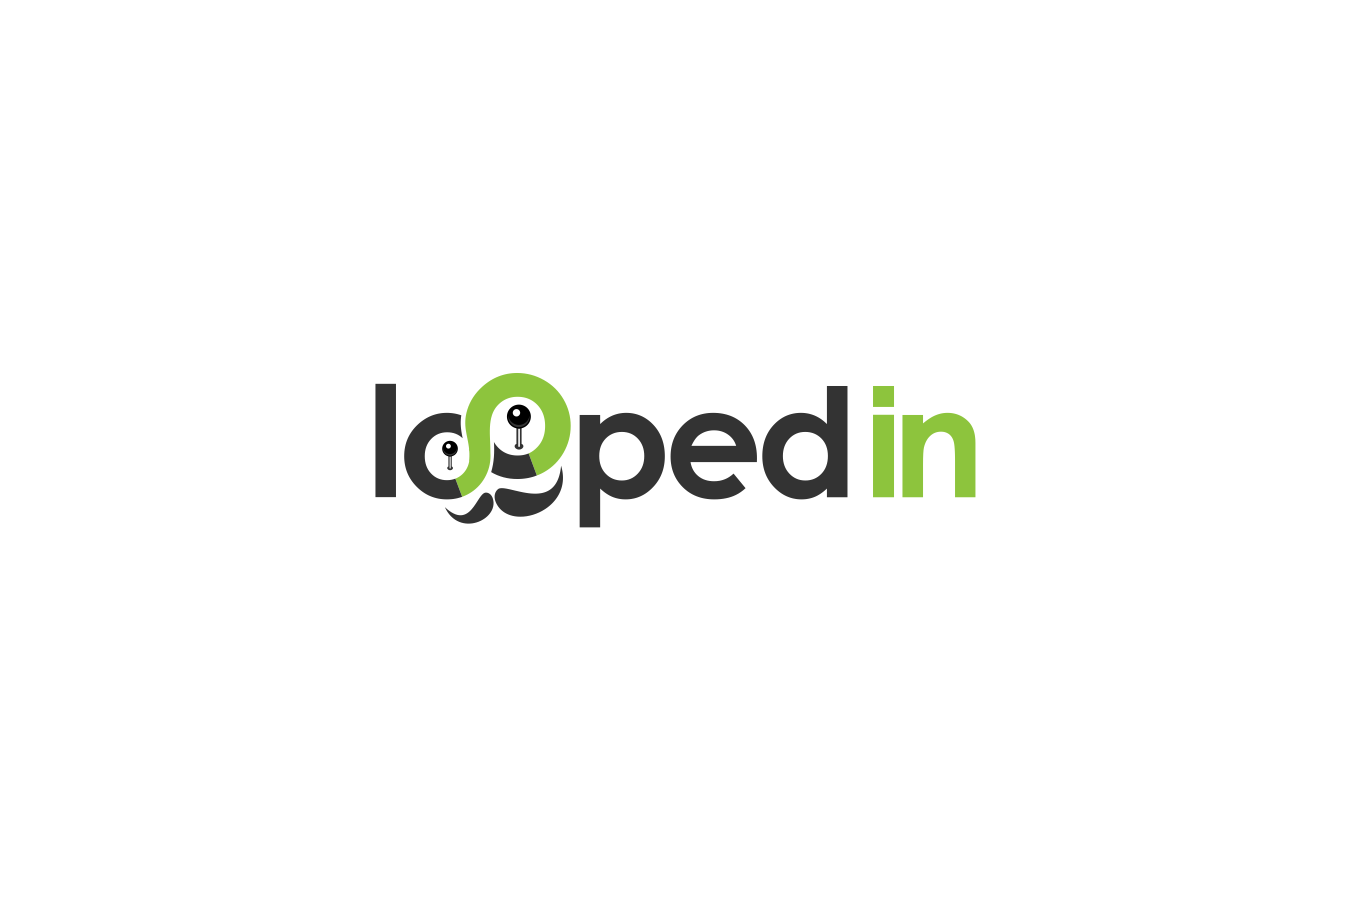 Create the next logo for LoopedIn